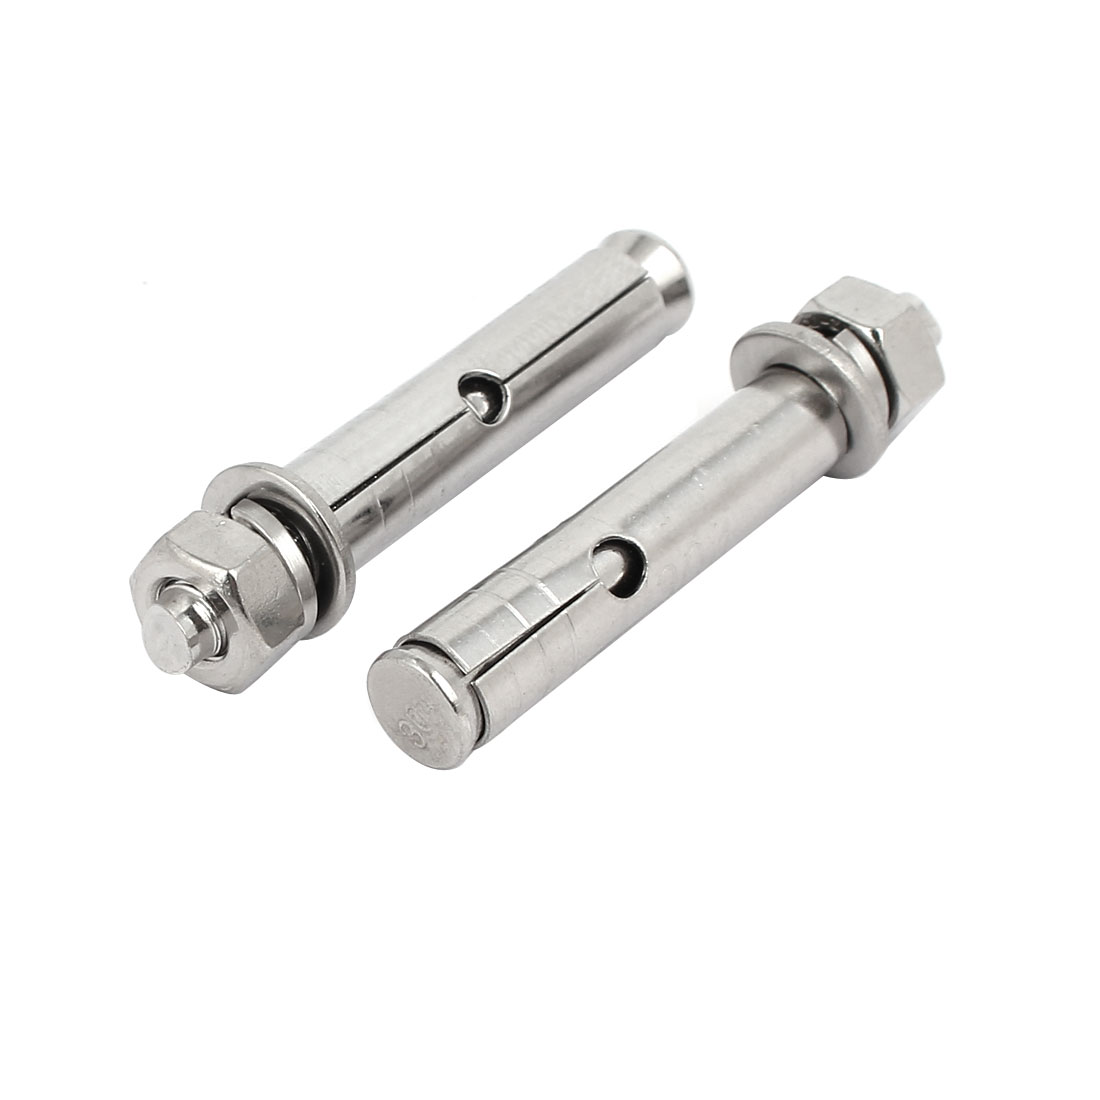 M6x50mm 304 Stainless Steel Air Condition Fitting Sleeve Anchor Expansion Bolt 2pcs